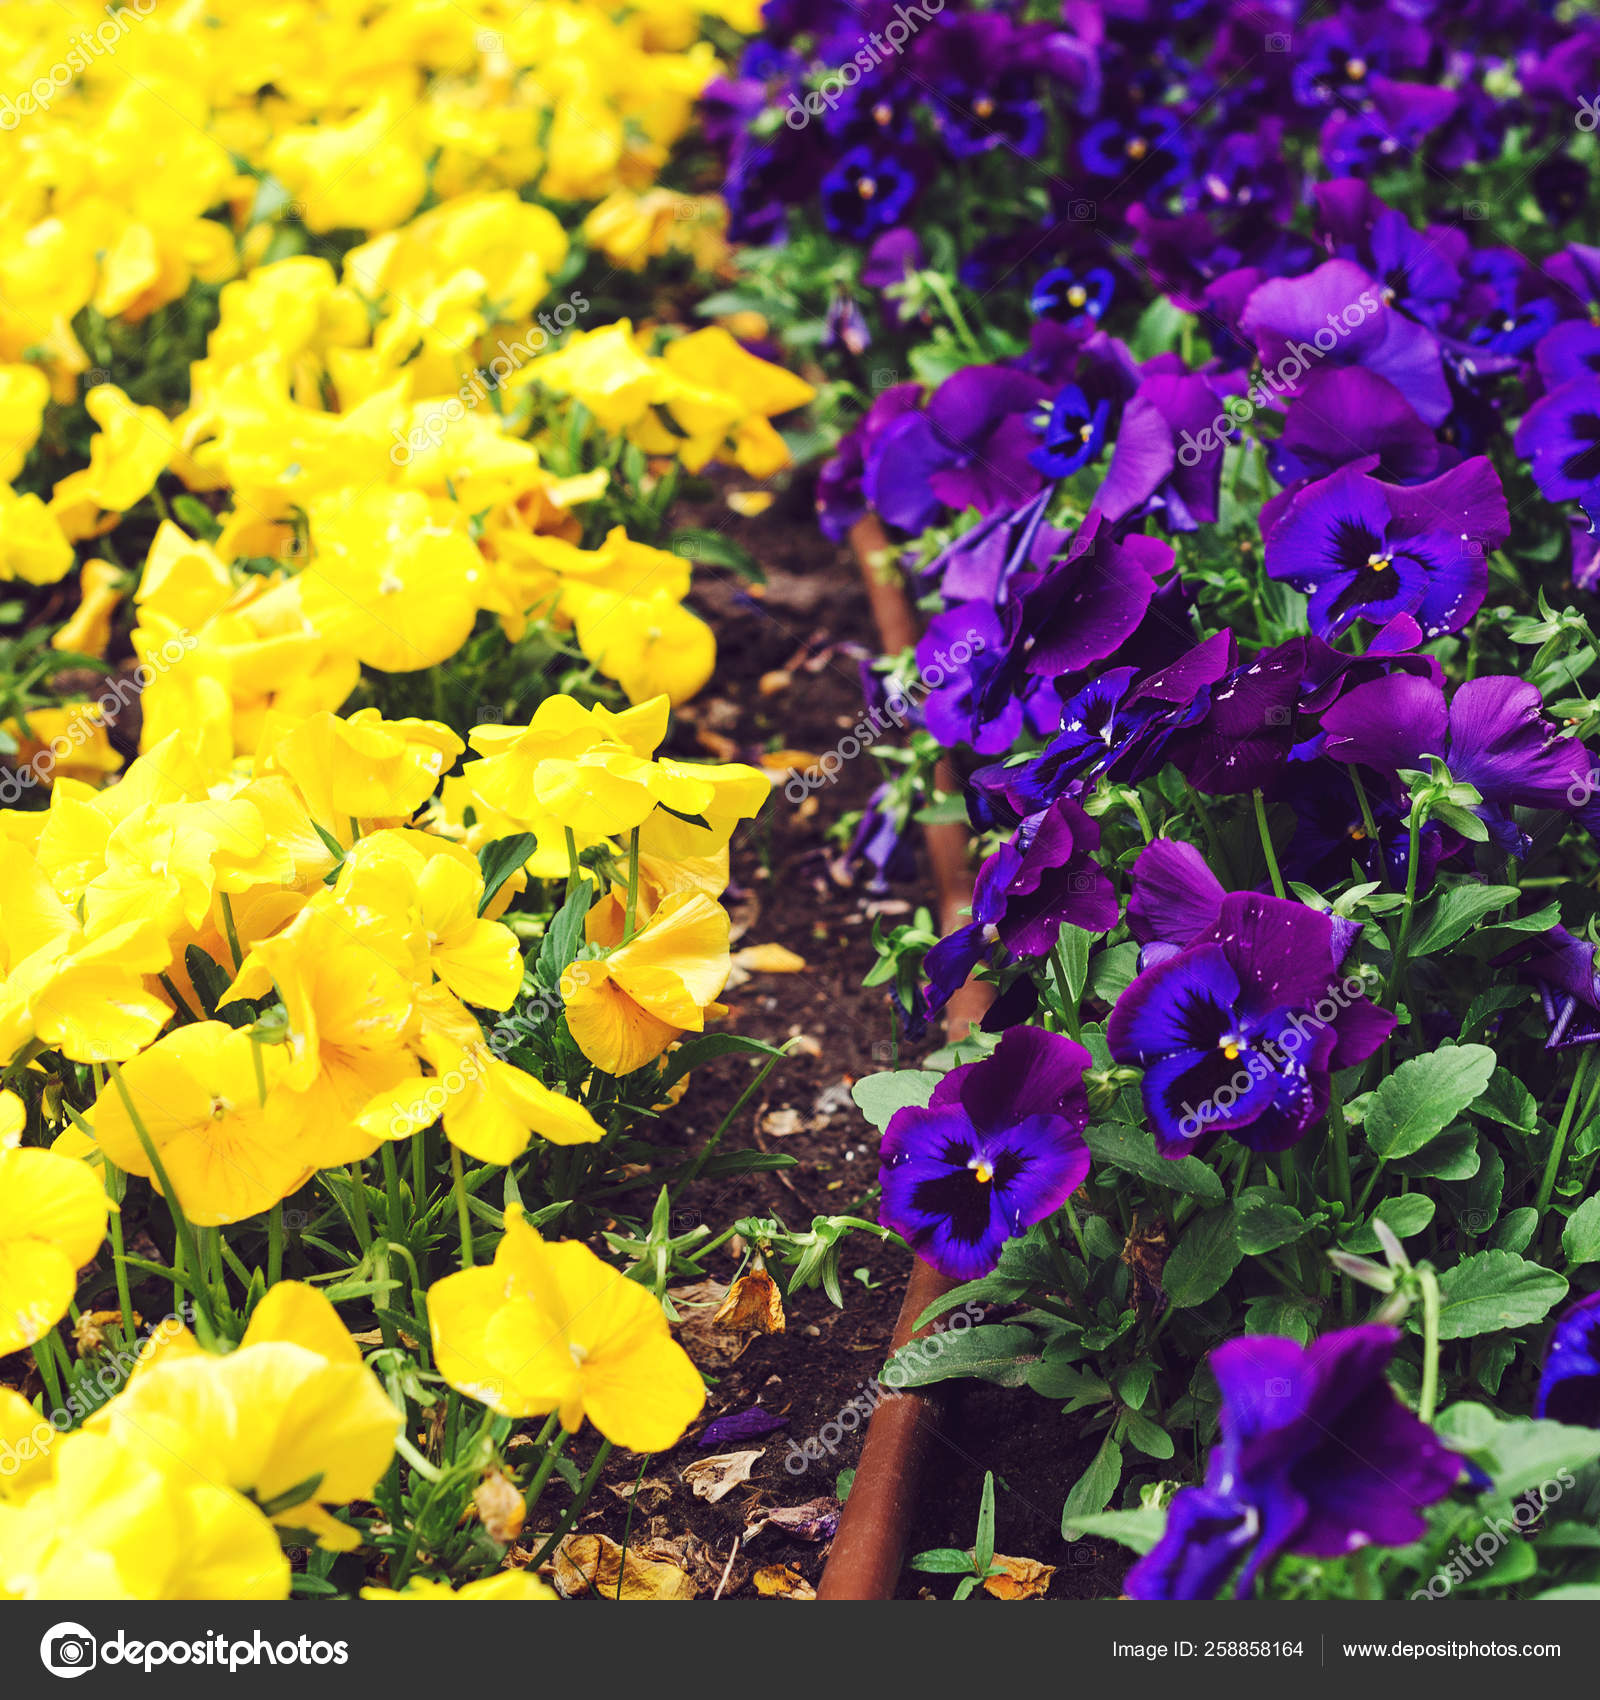 Flowerbed With Purple And Yellow Petunias Close Up Colorful Petunia Flower Petunia Hybrida In The Garden Stock Photo C Volurol 258858164